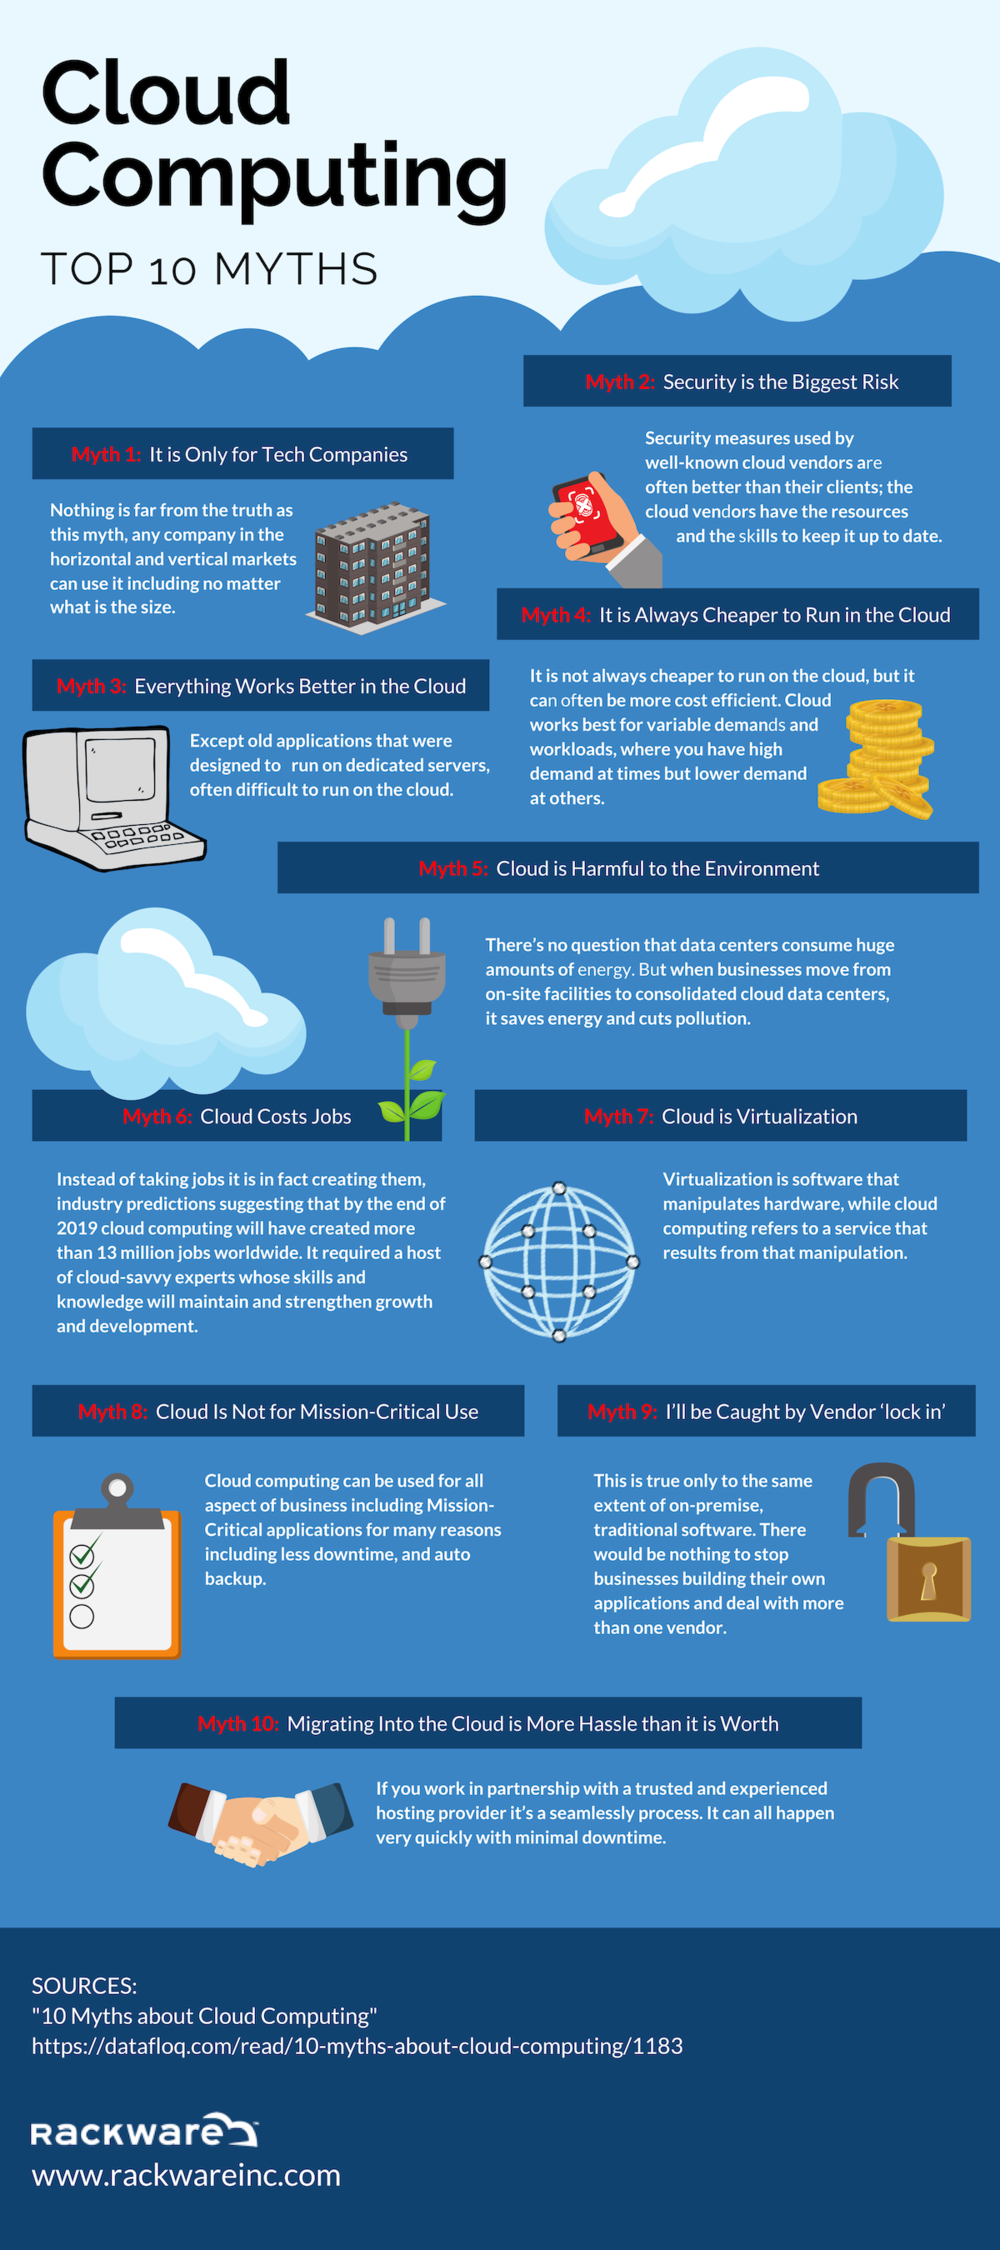 10 Myths about Cloud Computing